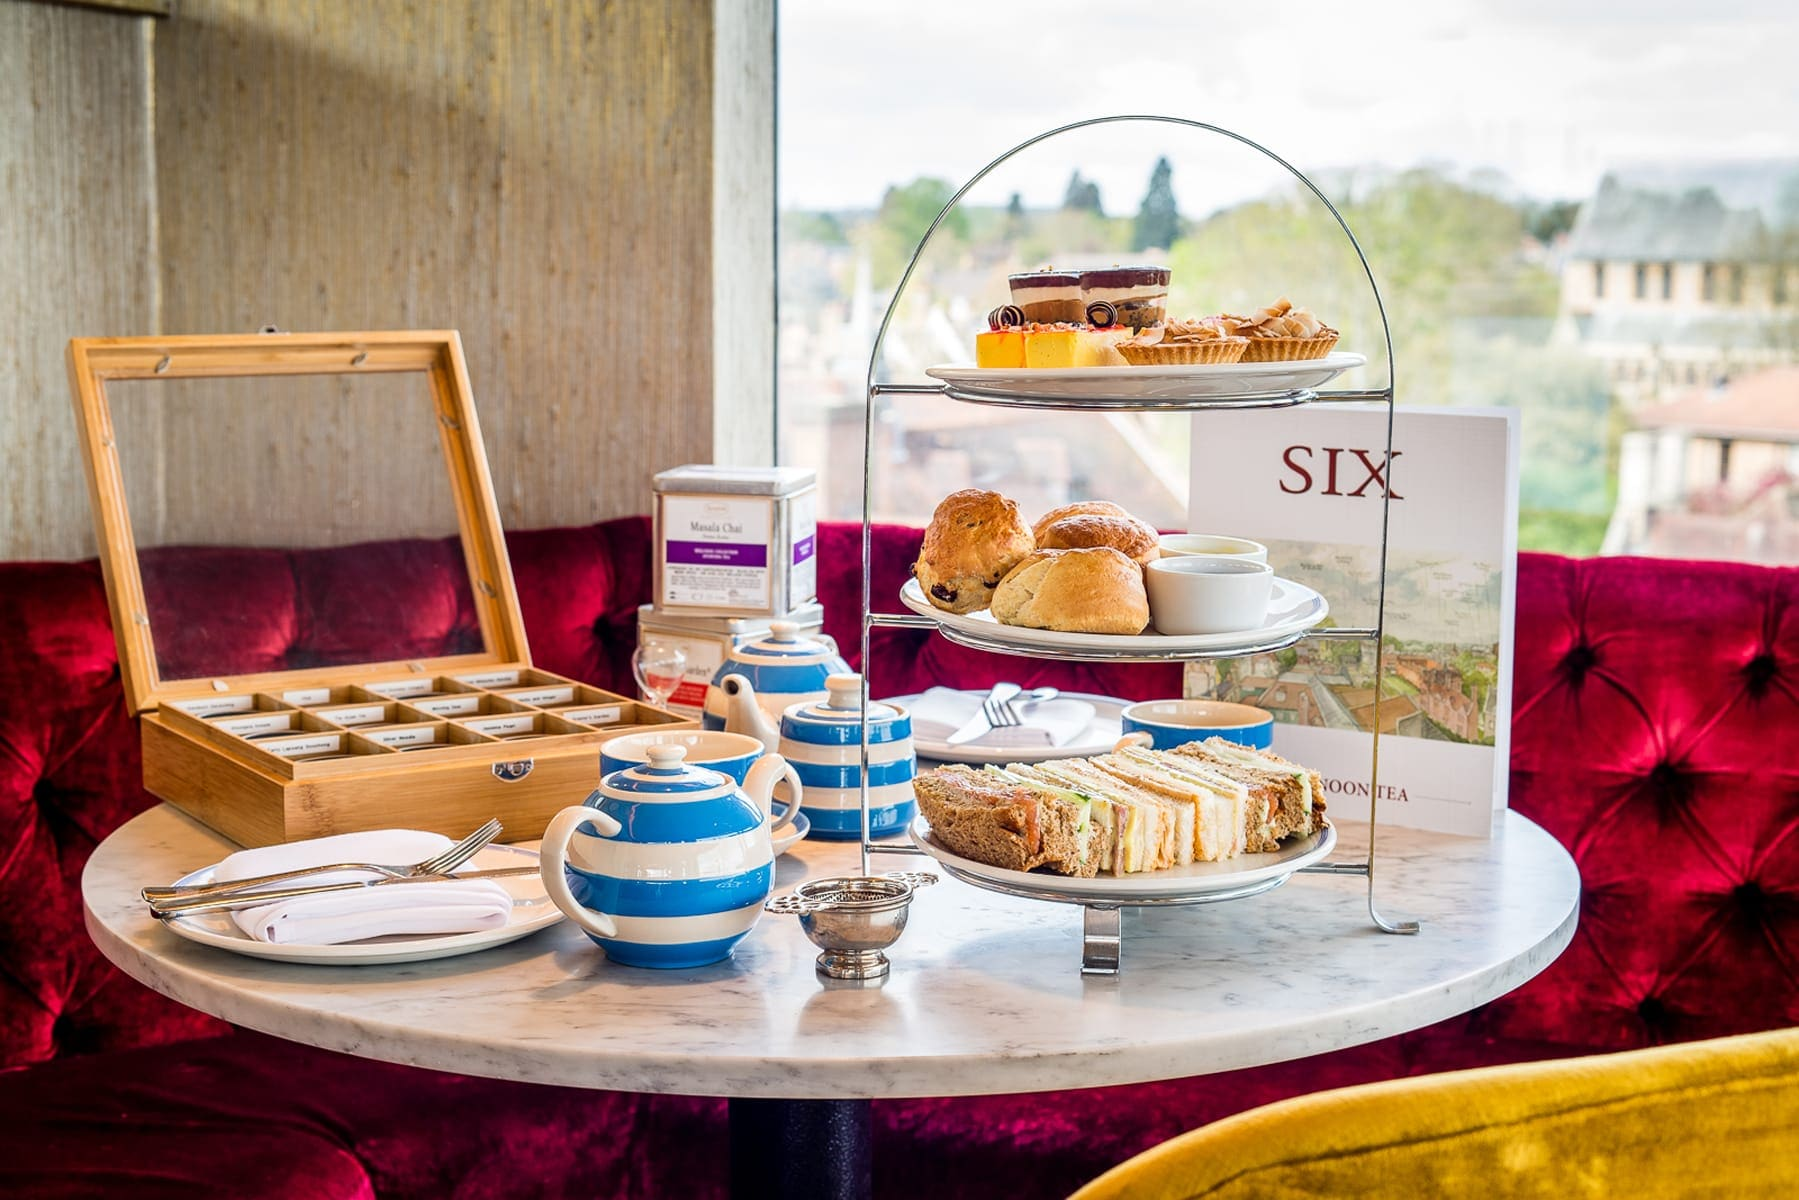 Afternoon tea, scones and sandwiches at SIX